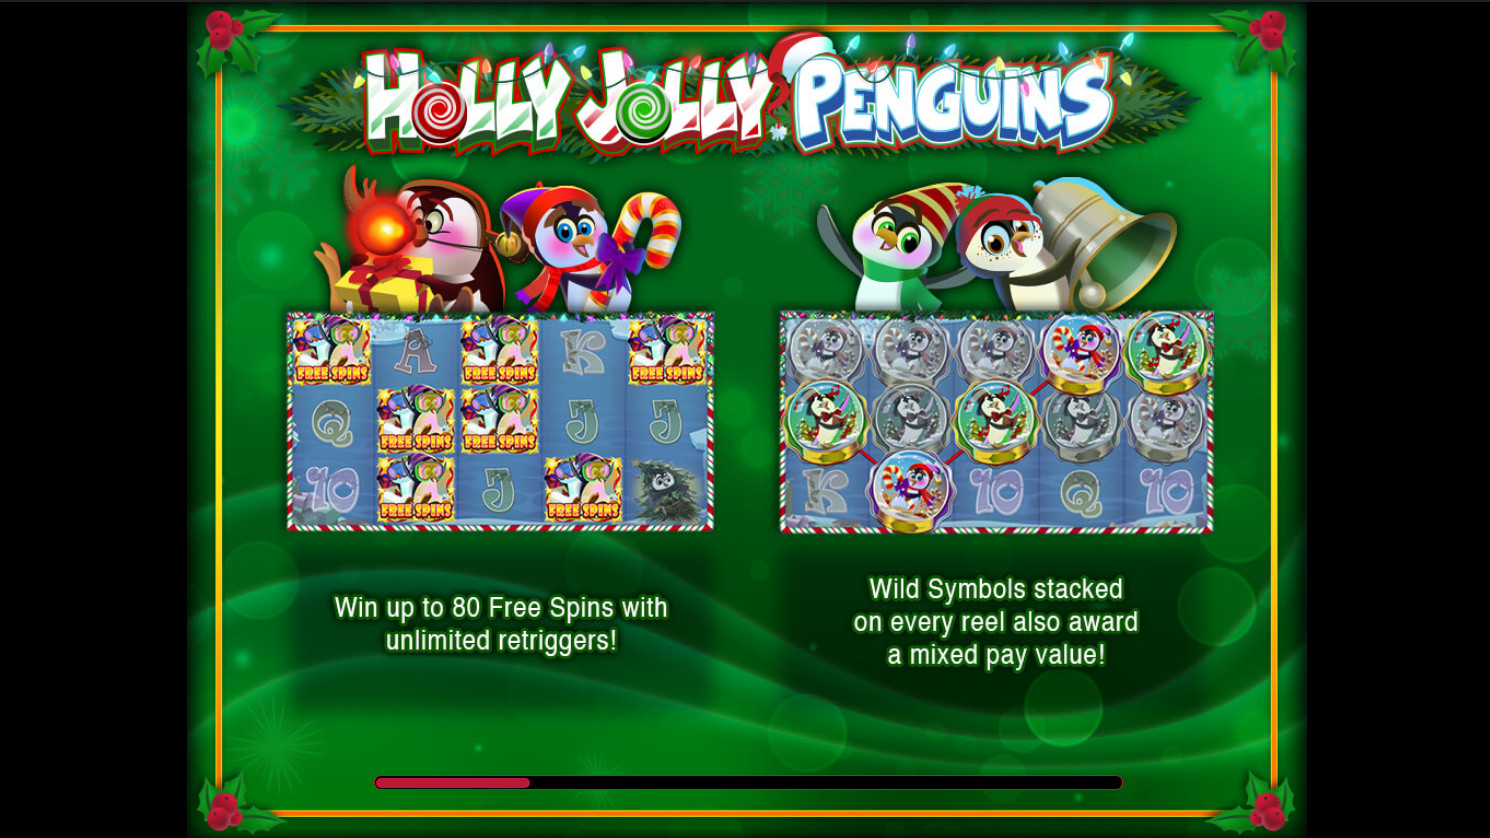 Holly Jolly Penguins slot machine